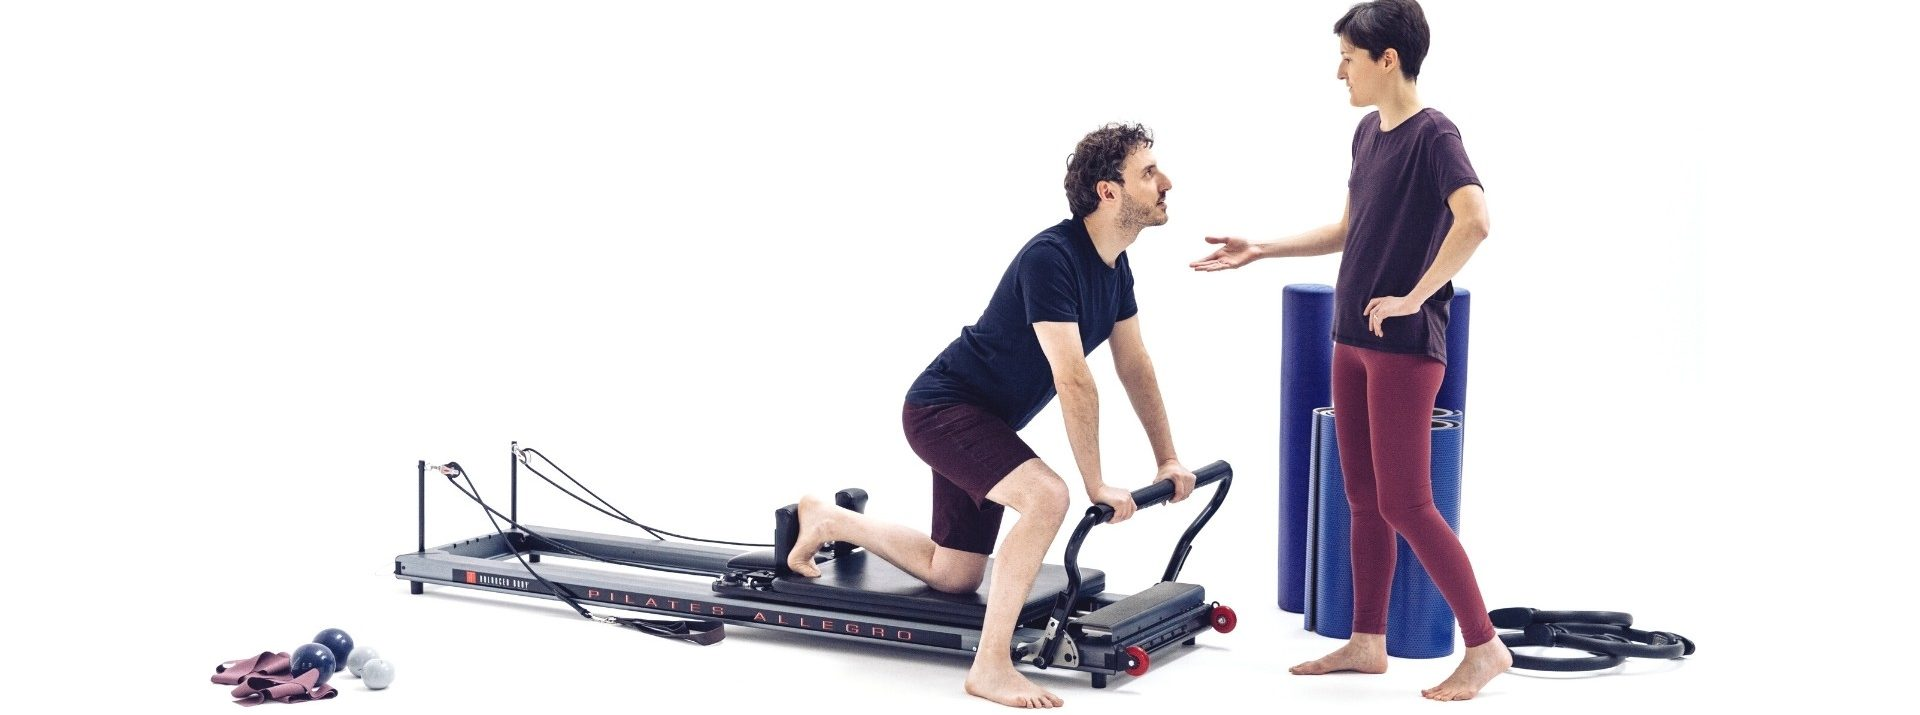 Laura Reformer Pilates With Patient Photo